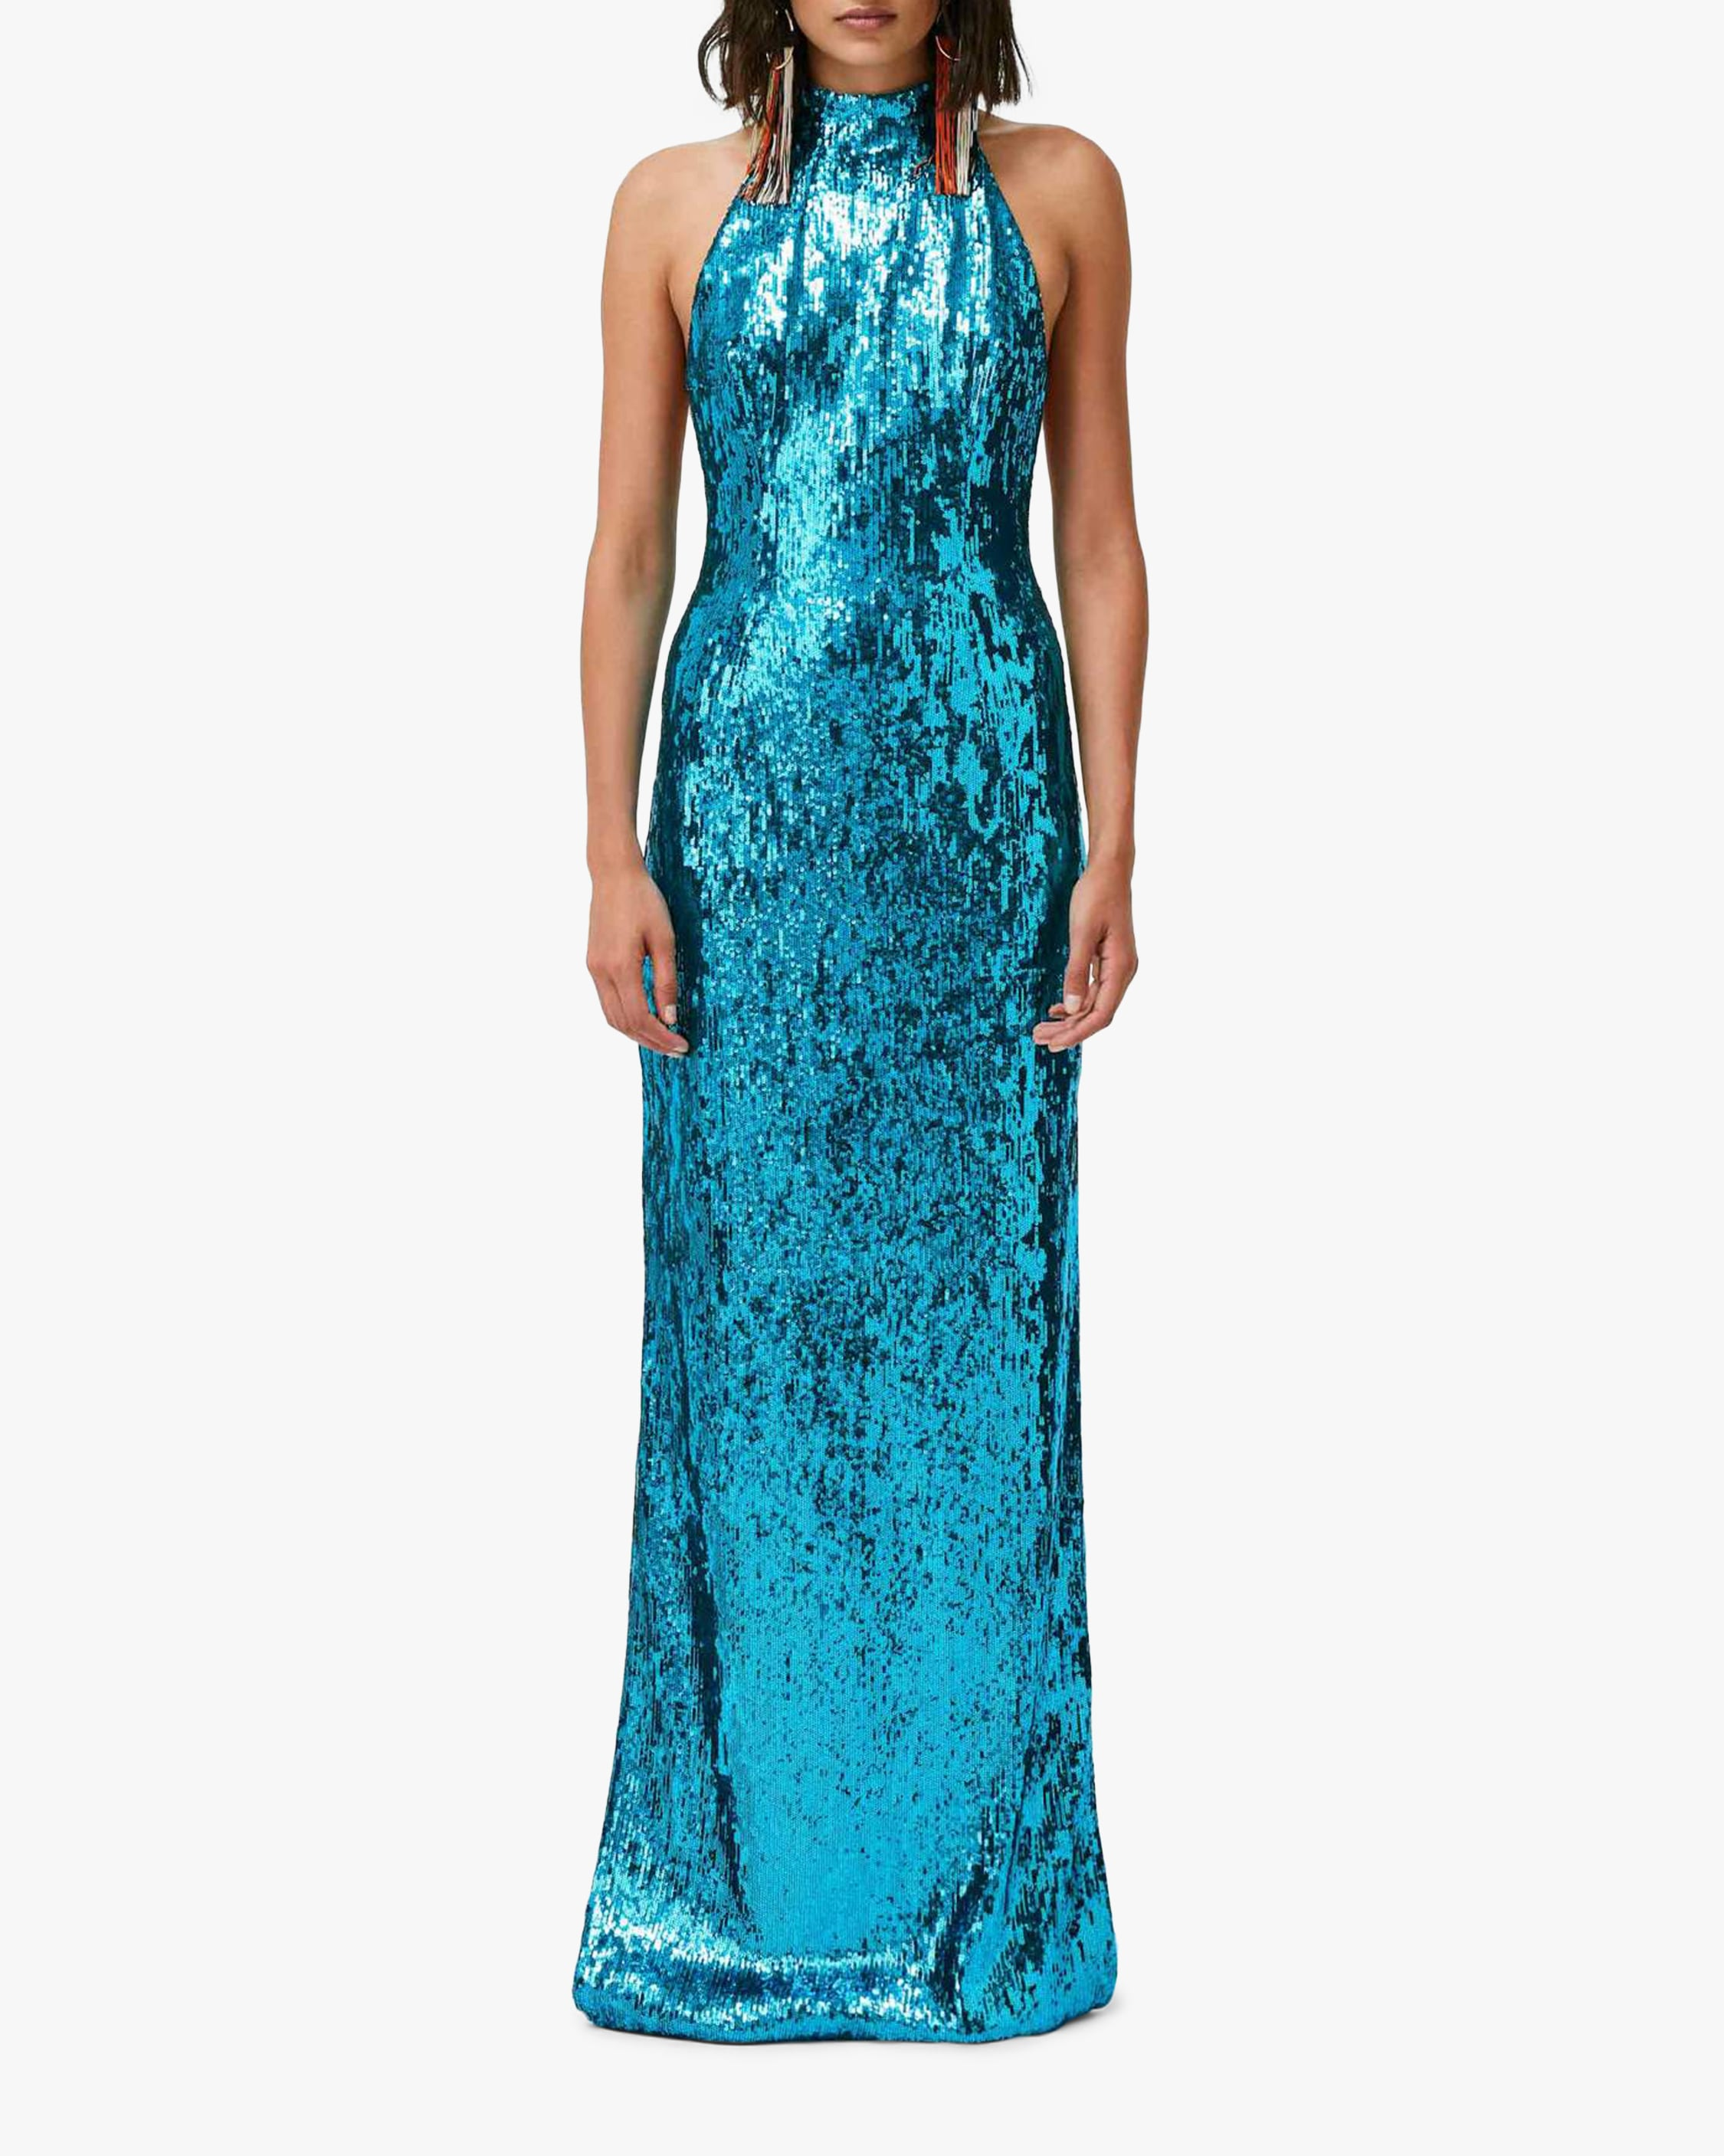 Galvan OCEANA DRESS